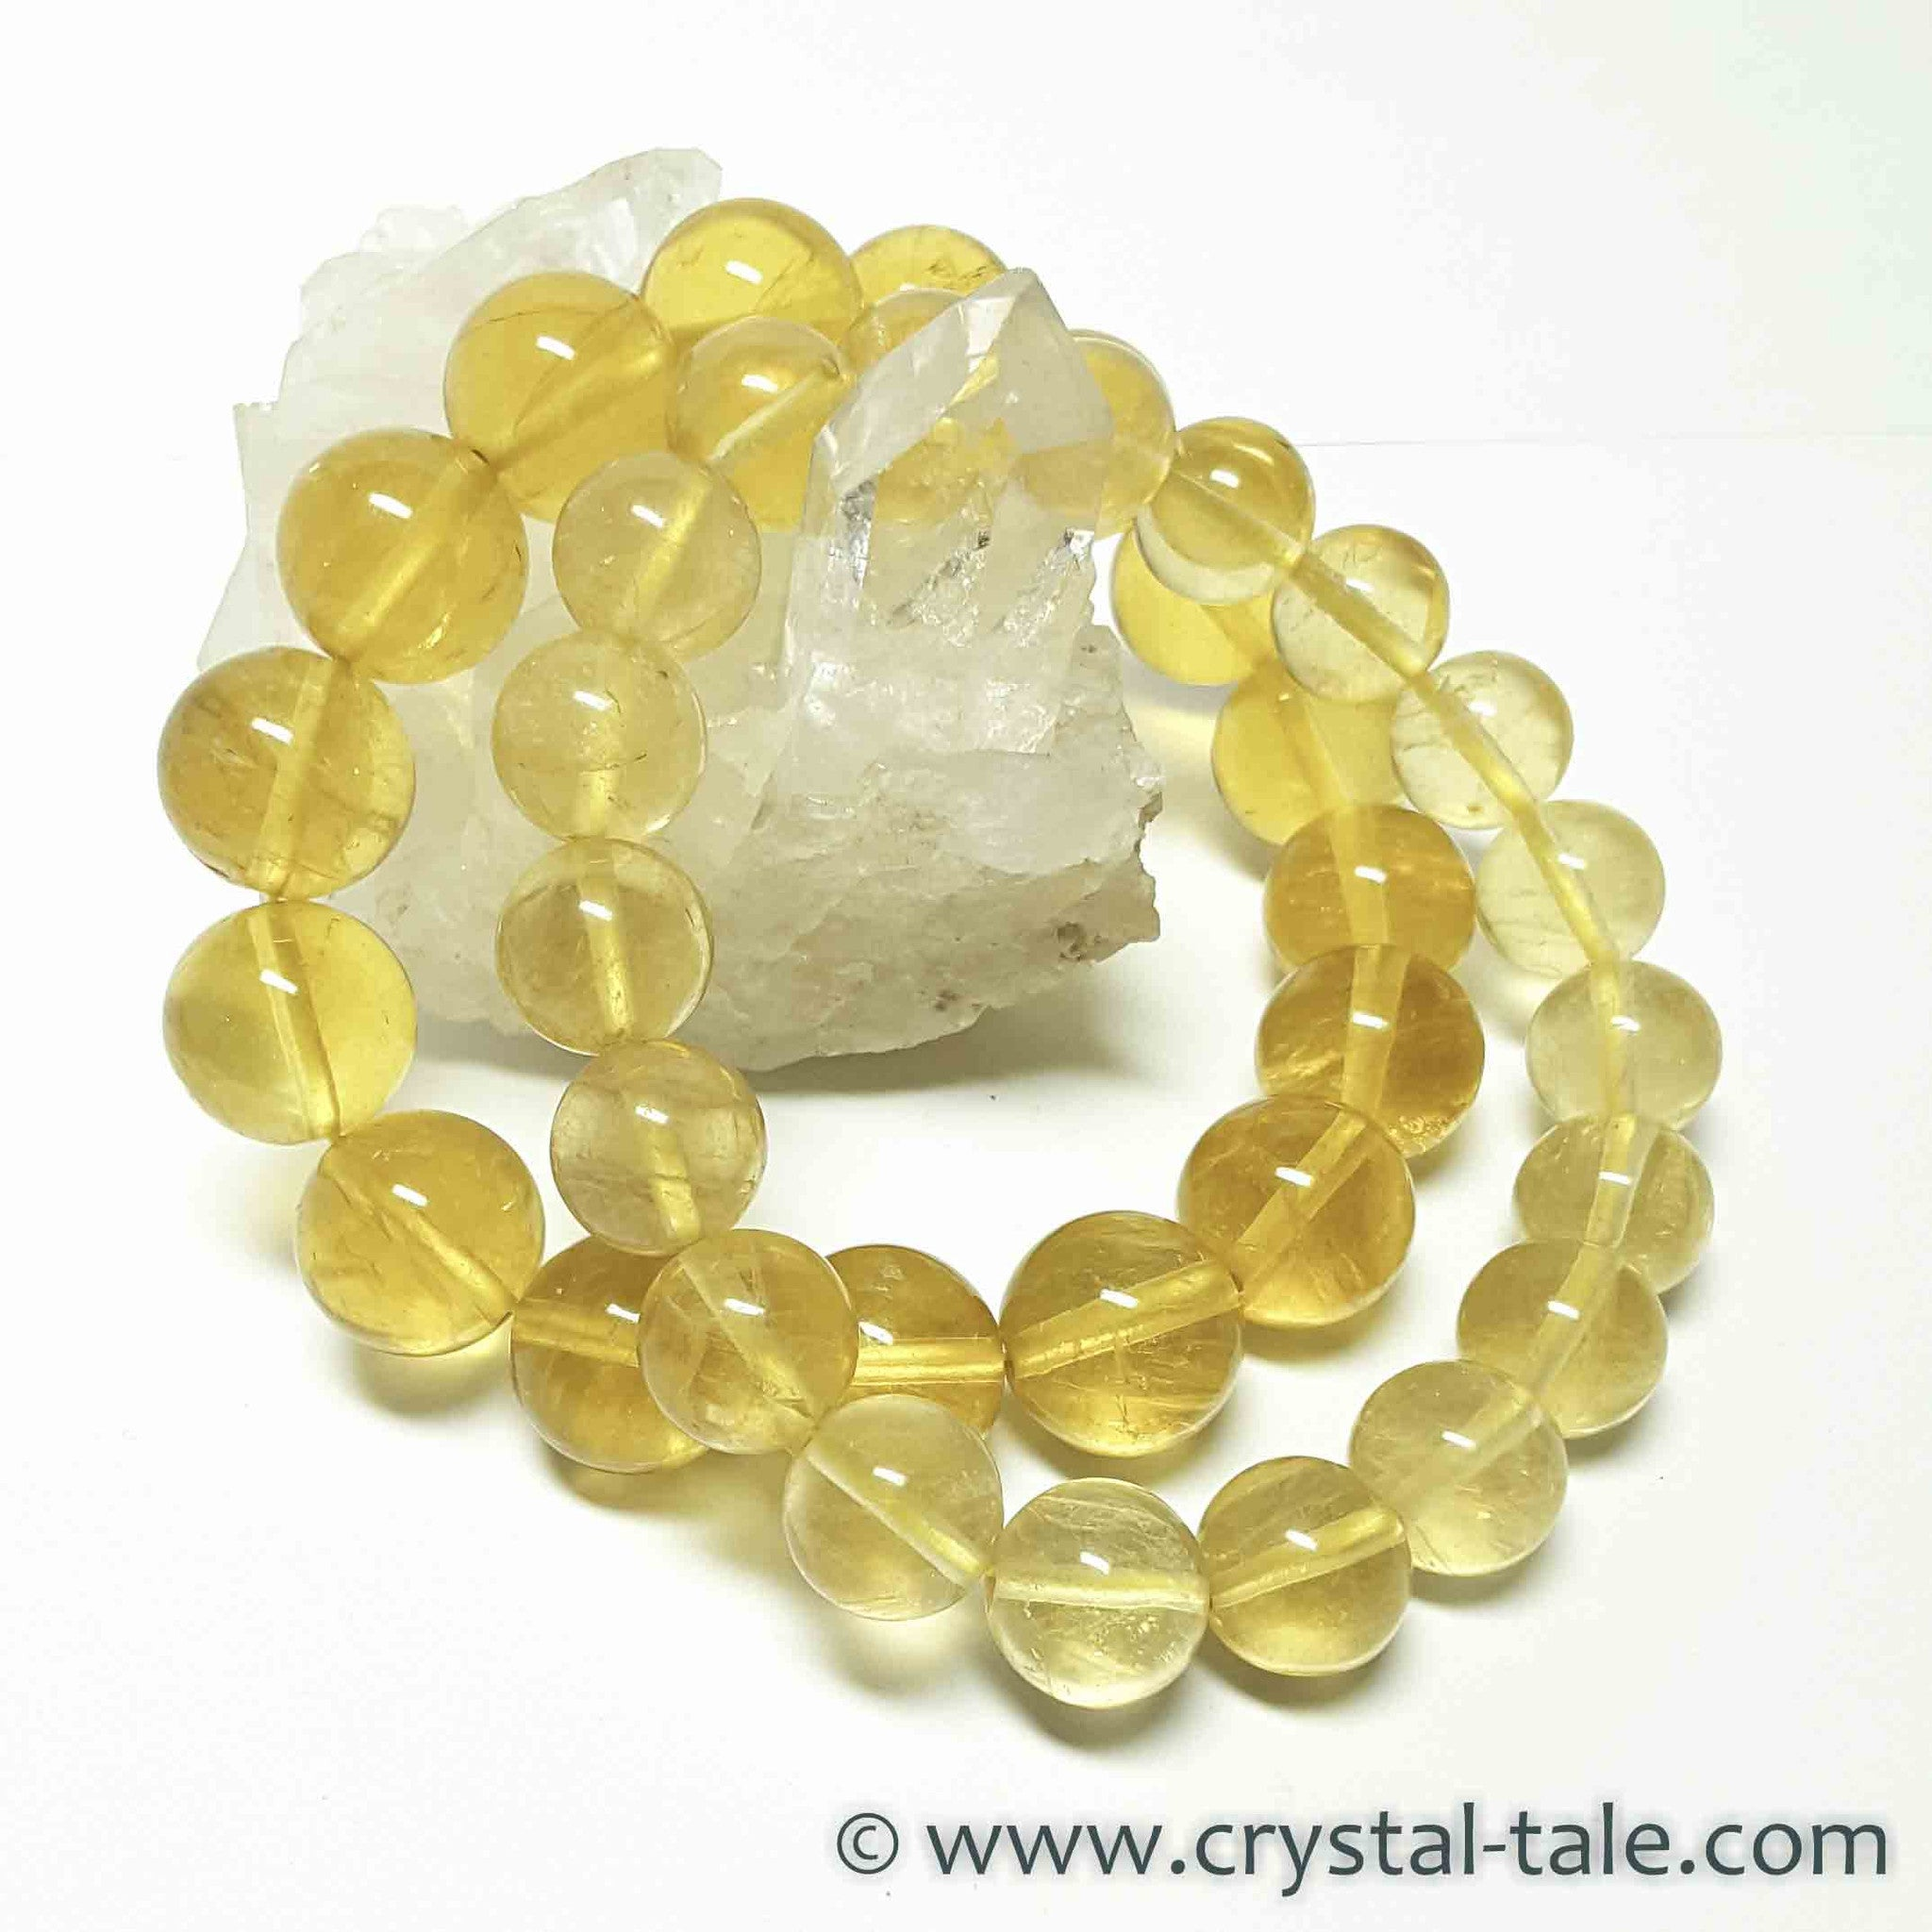 Golden Calcite Bracelet